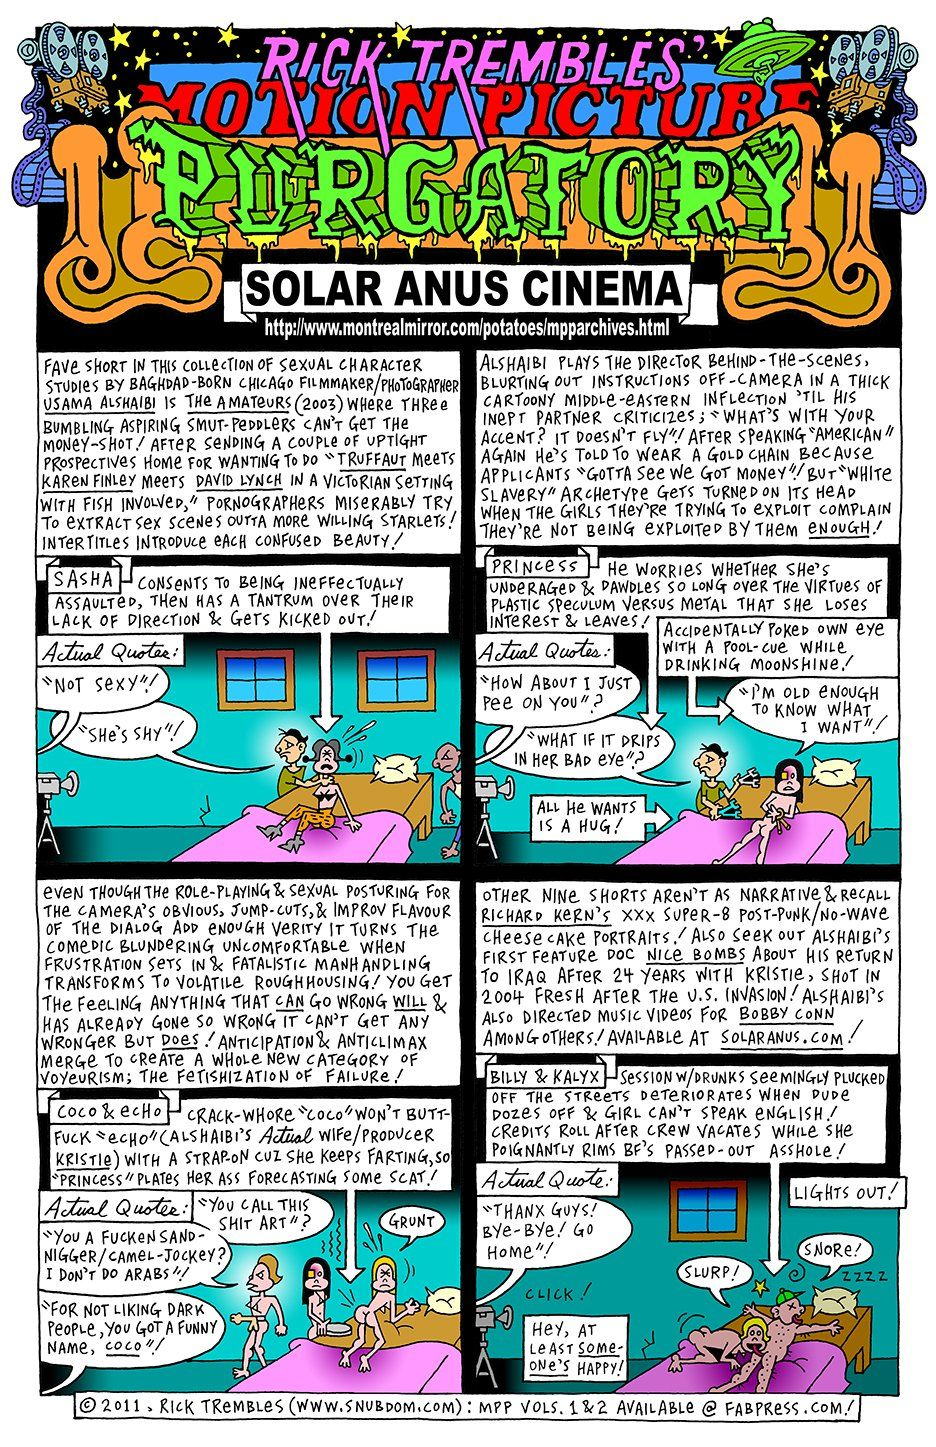 Diamond reccomend Solar anus cinema